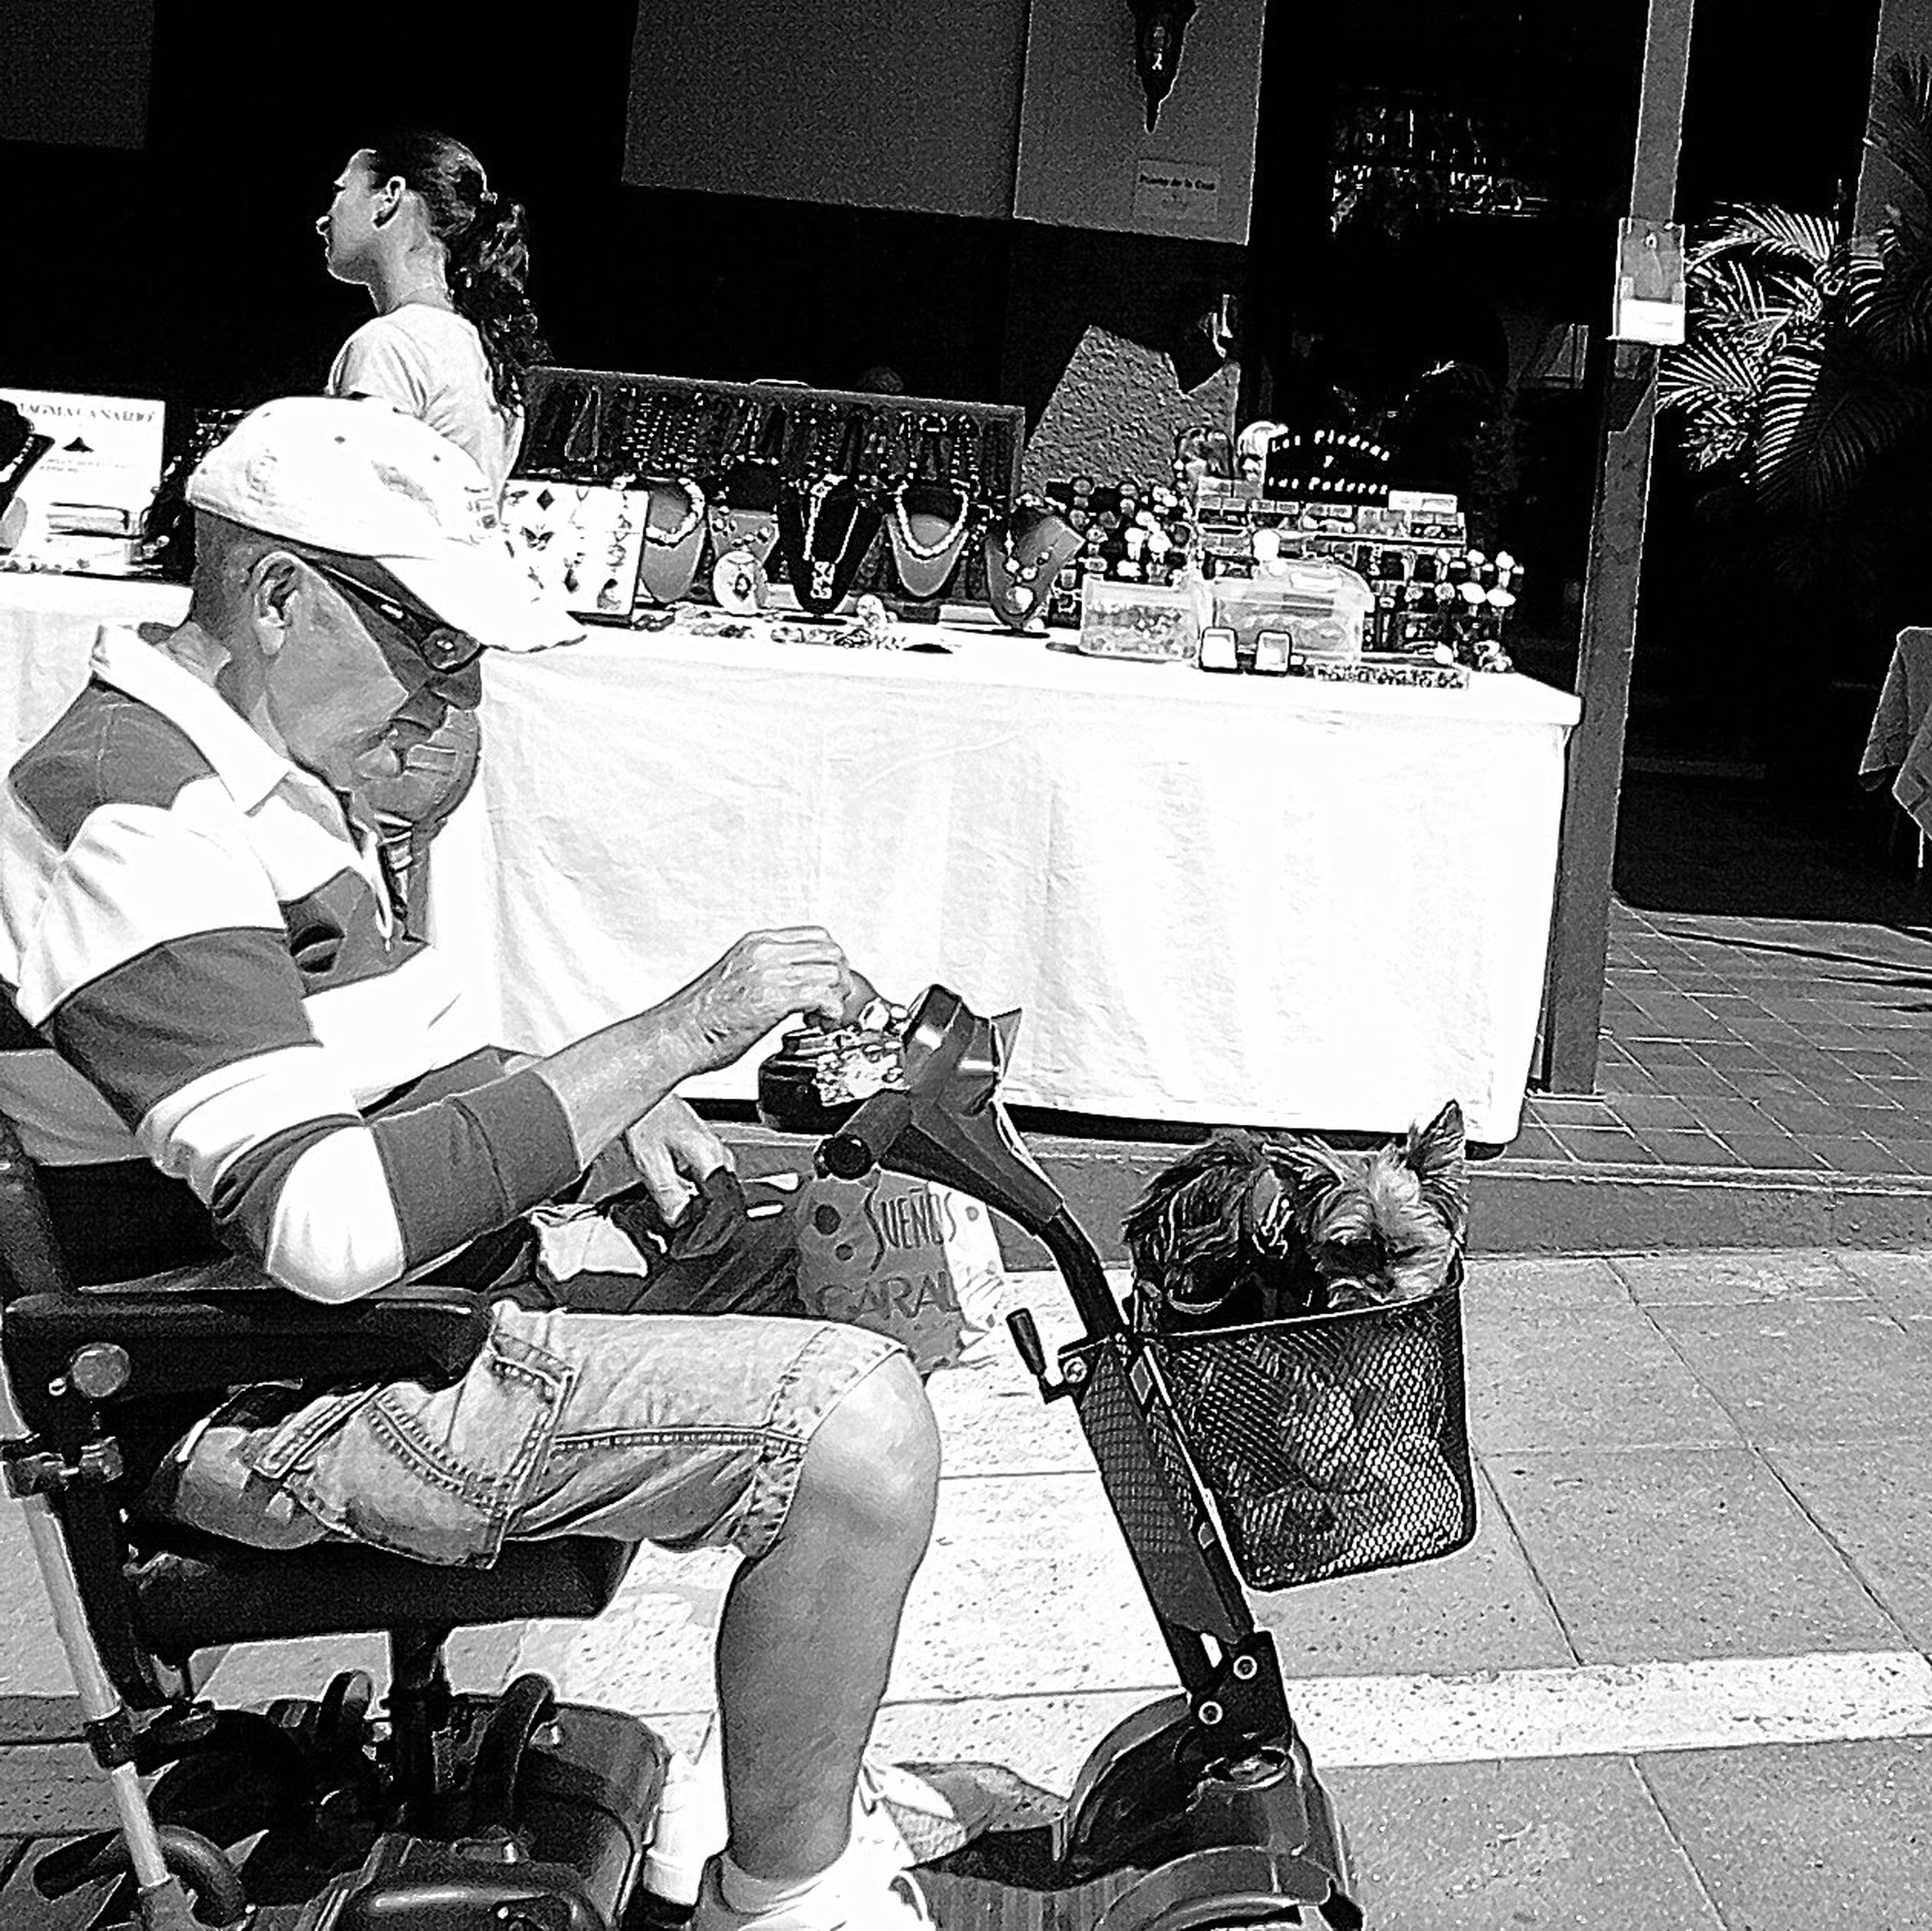 men, market, lifestyles, person, retail, chair, sitting, street, building exterior, for sale, leisure activity, market stall, casual clothing, high angle view, sidewalk cafe, food and drink, food, shopping, street market